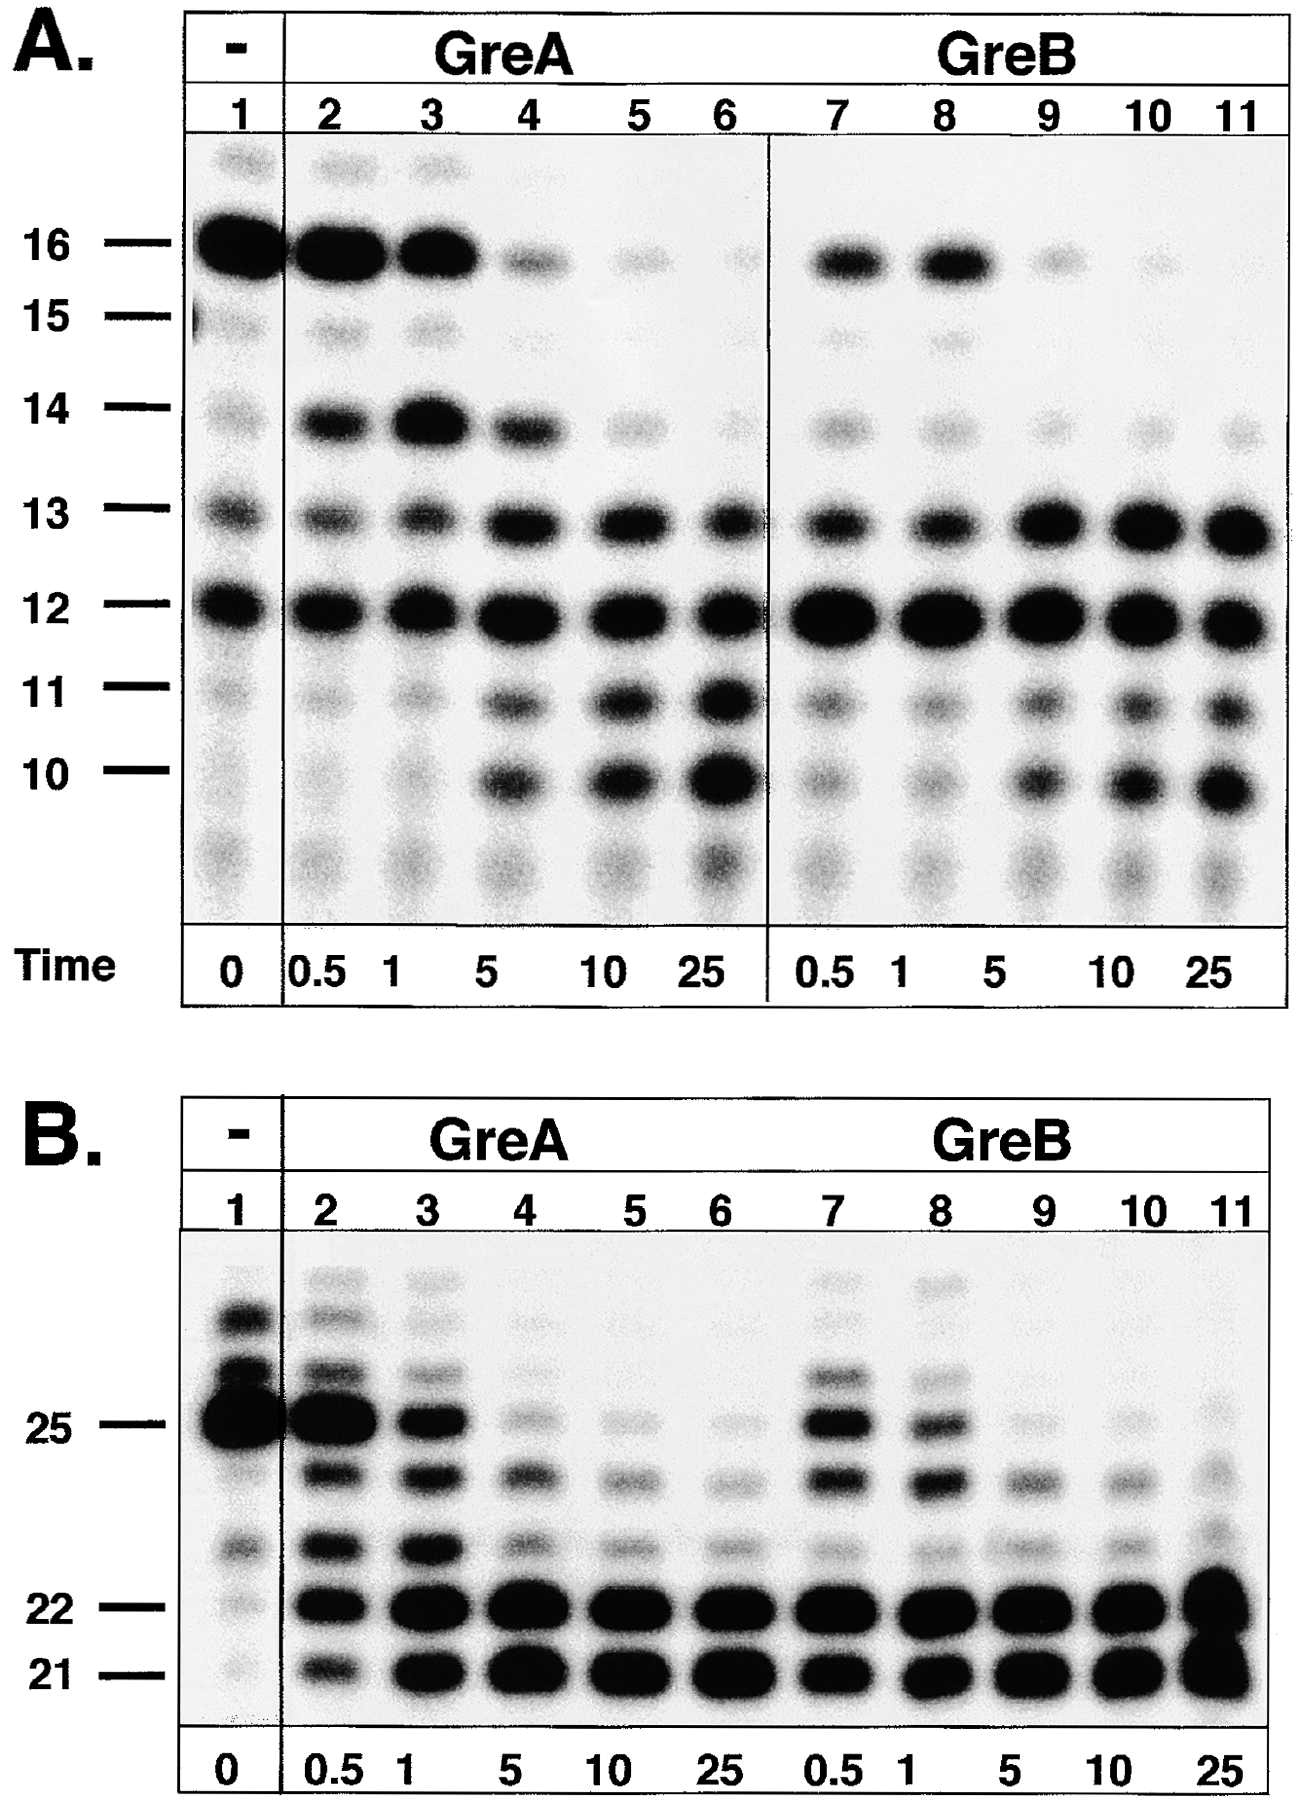 Function of Transcription Cleavage Factors GreA and GreB